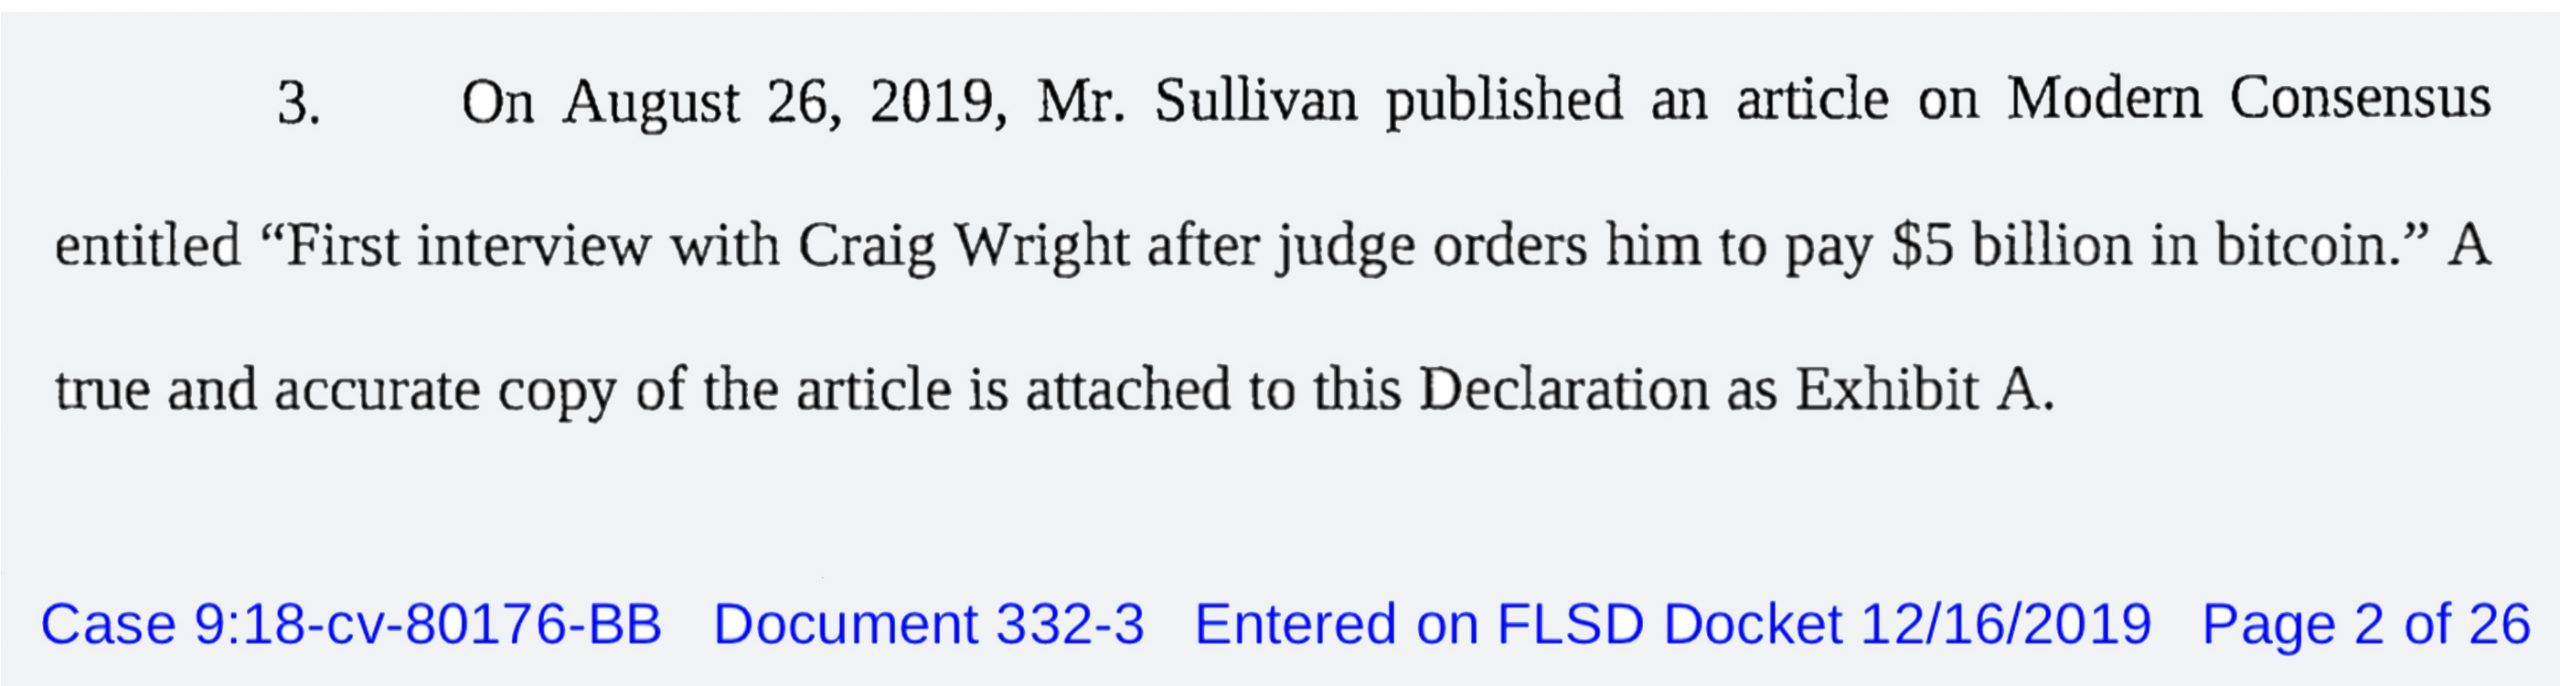 Kleiman Estate Asks Judge to Overrule Craig Wright's Objections